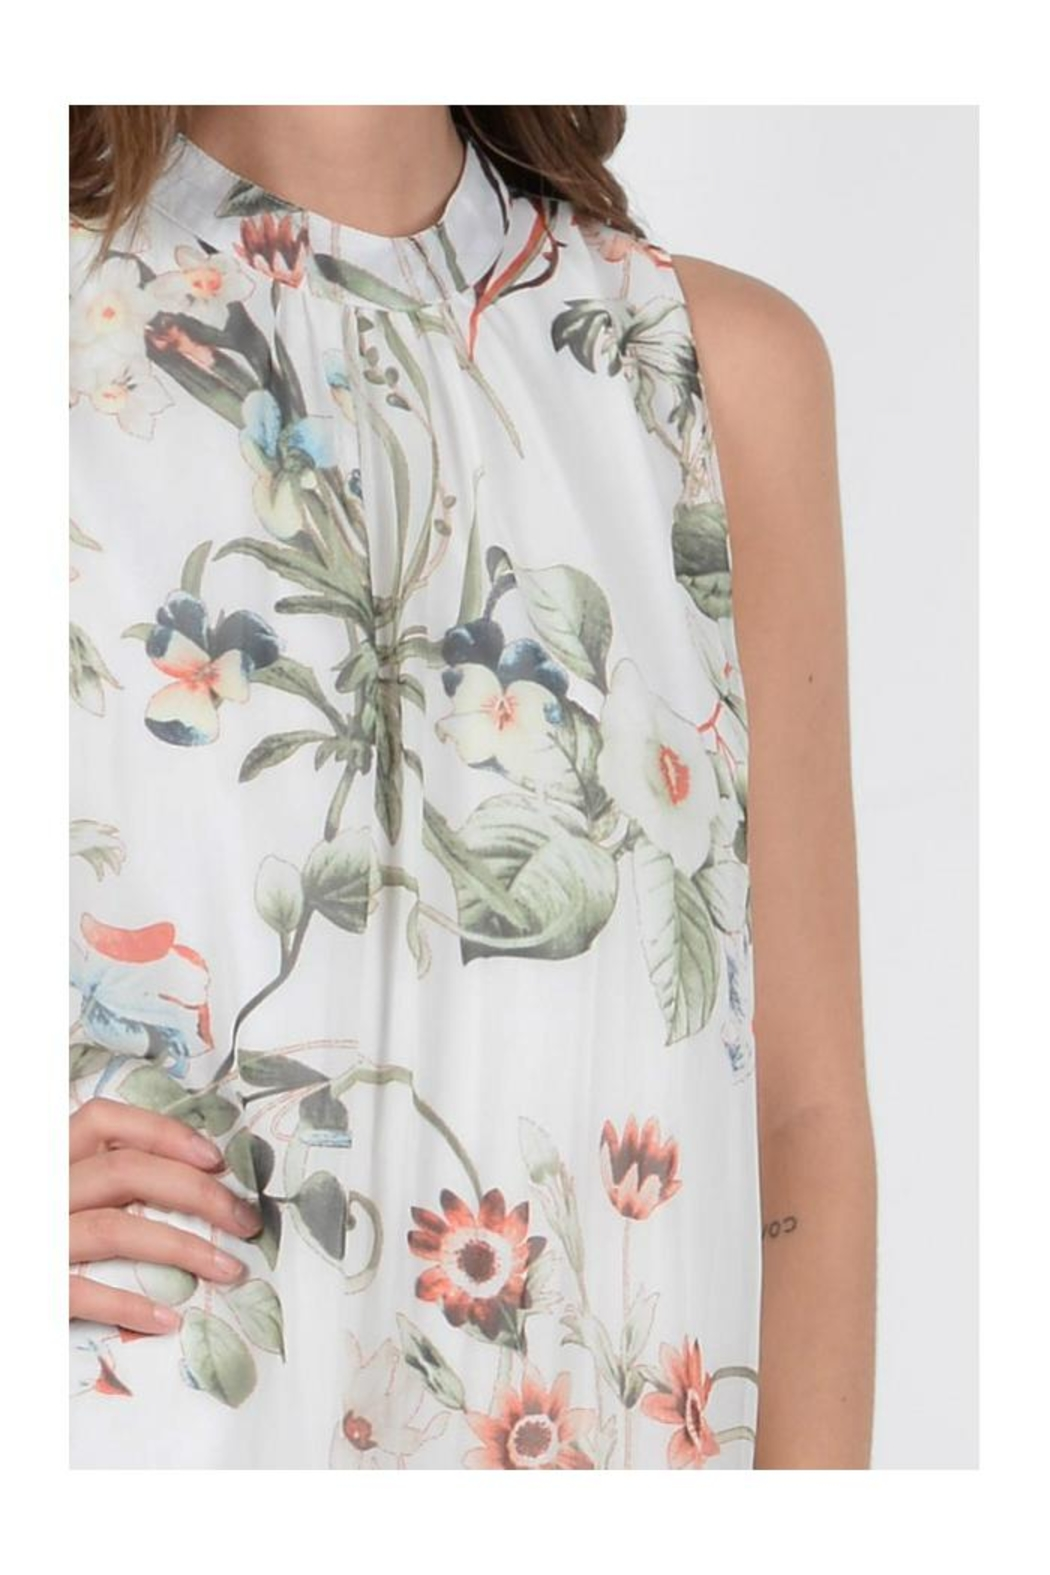 Molly Bracken Floral Sleeveless Dress - Side Cropped Image